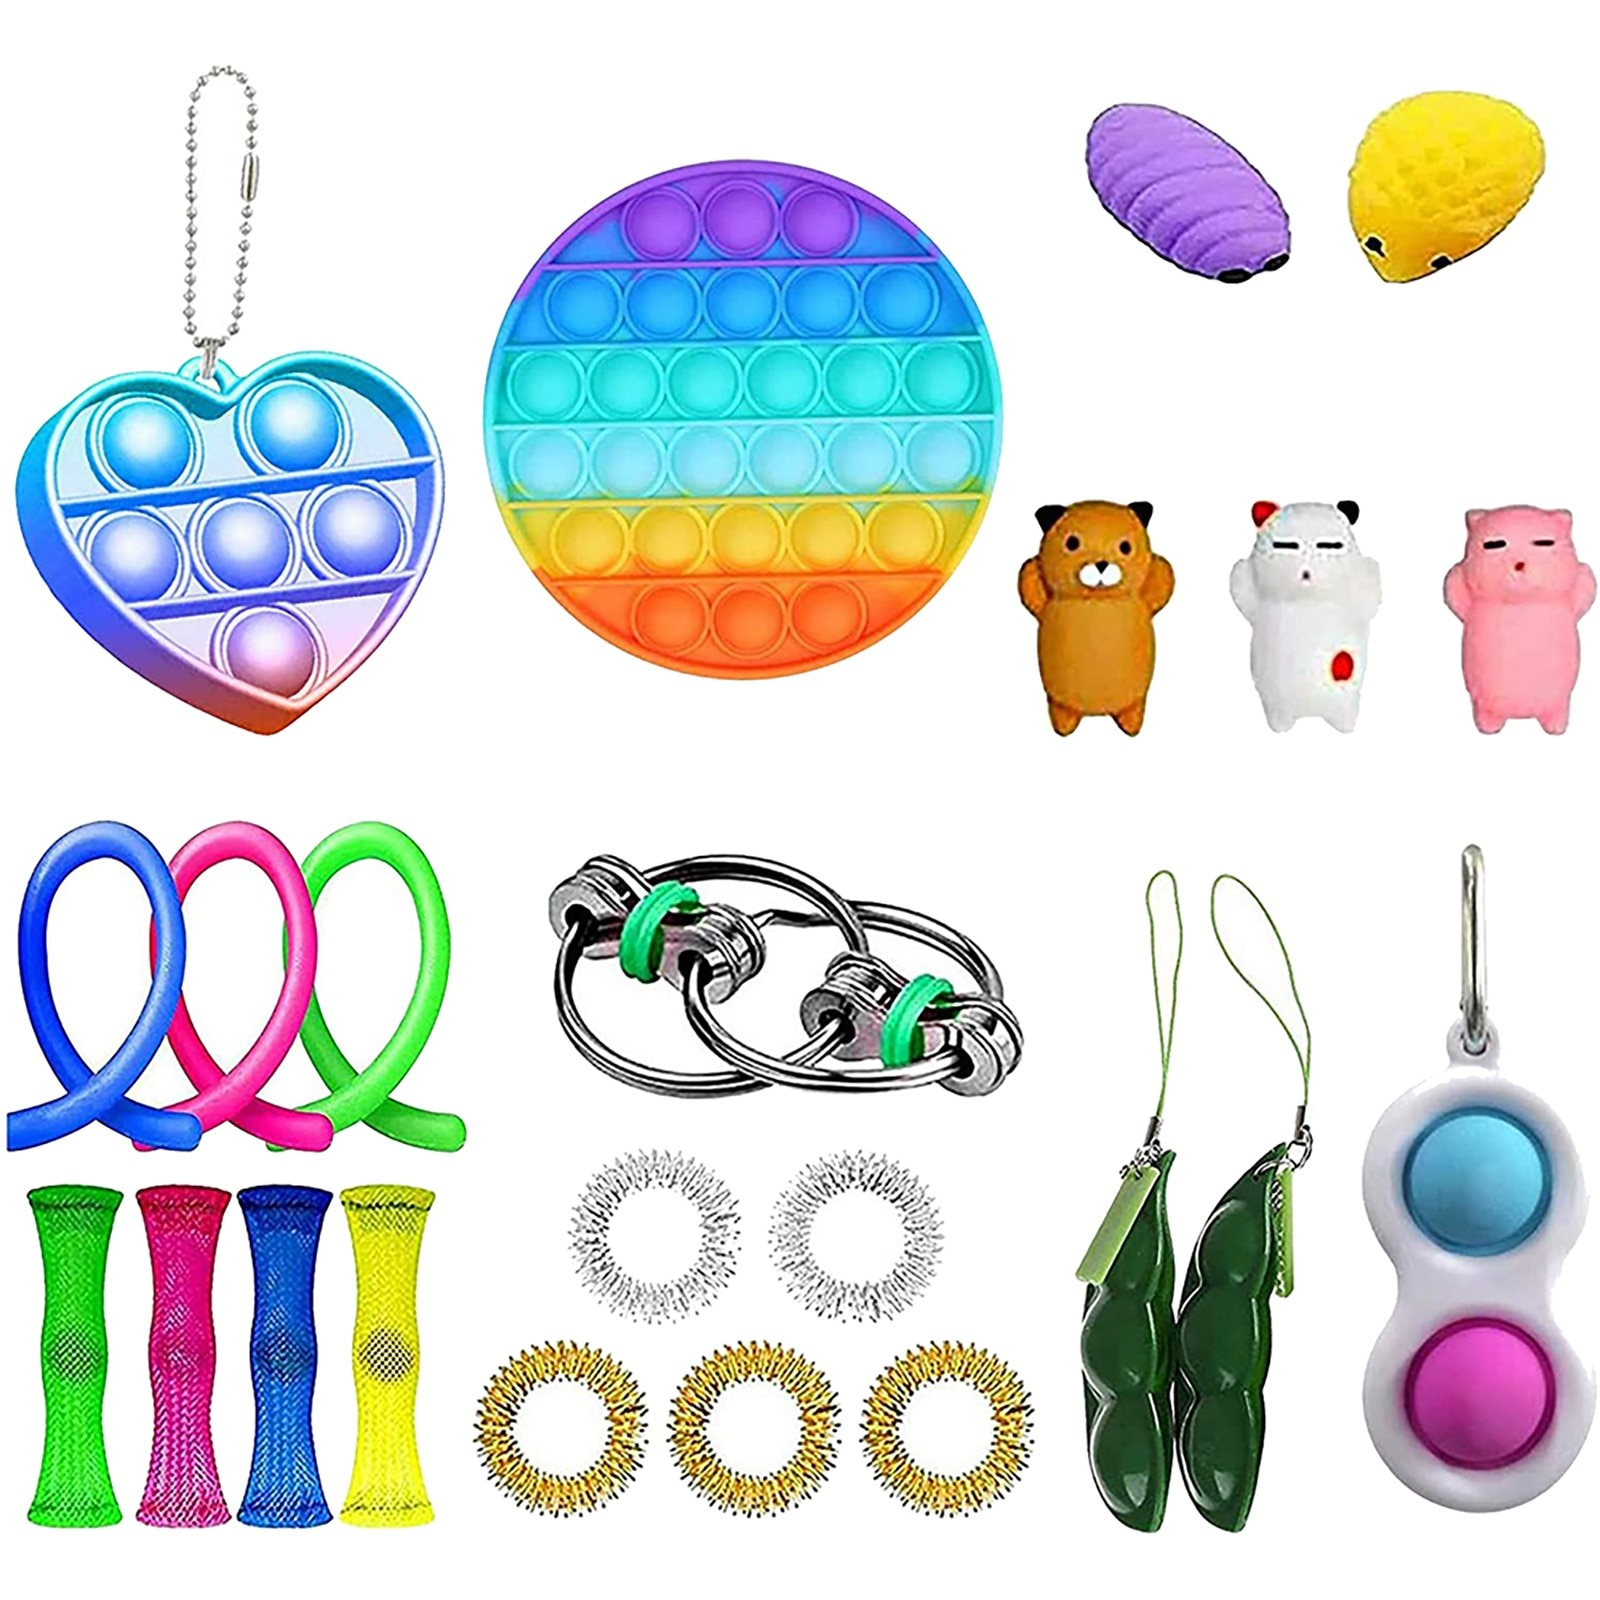 24pcs Fidget Toys Anti Stress Toy Set Relief Gift for Adults Girl Children Sensory Stress Relief Antistress Toys Drop Ship